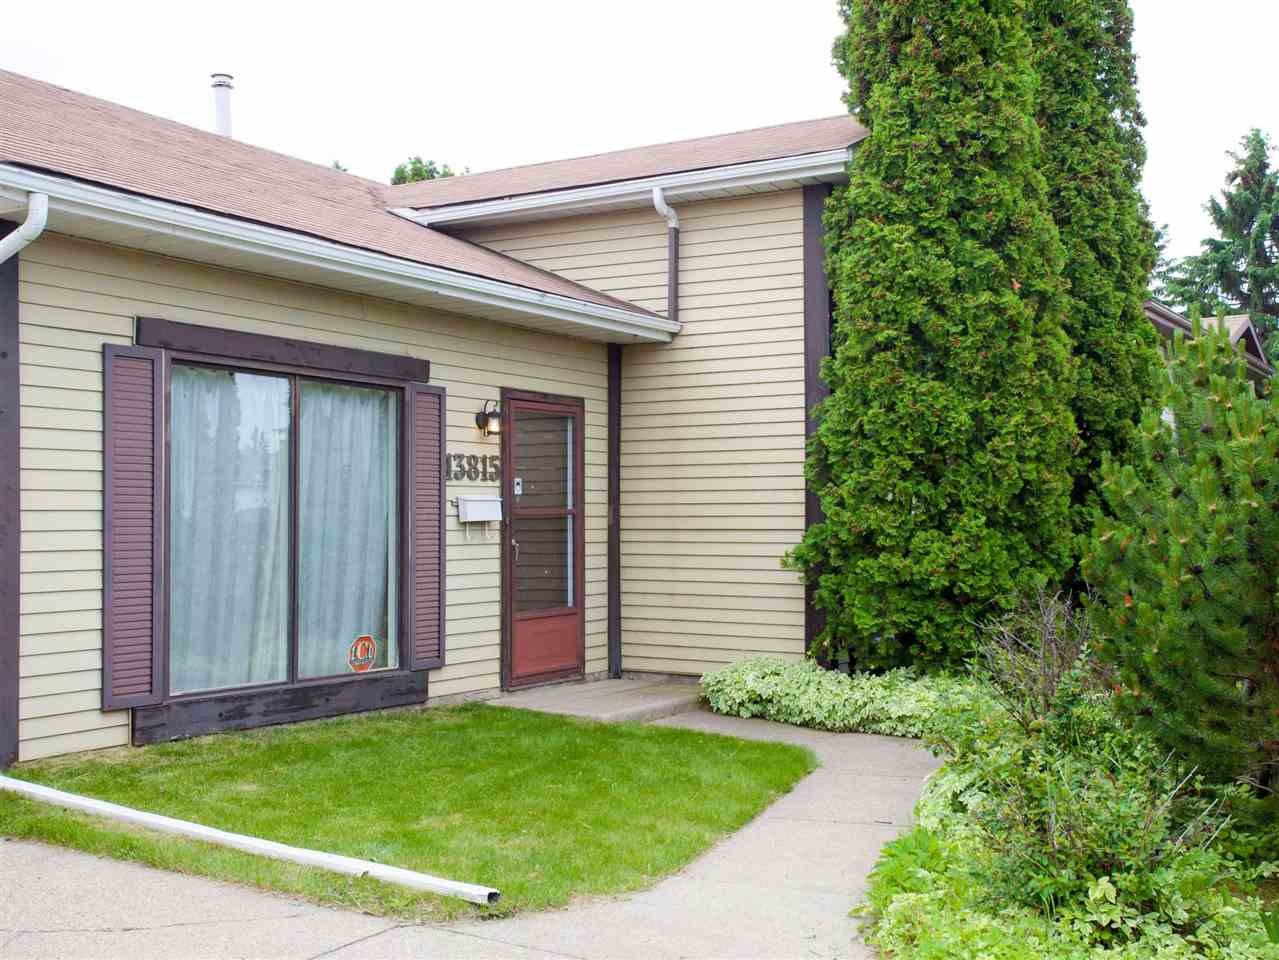 MLS® listing #E4162856 for sale located at 13815 25 Street